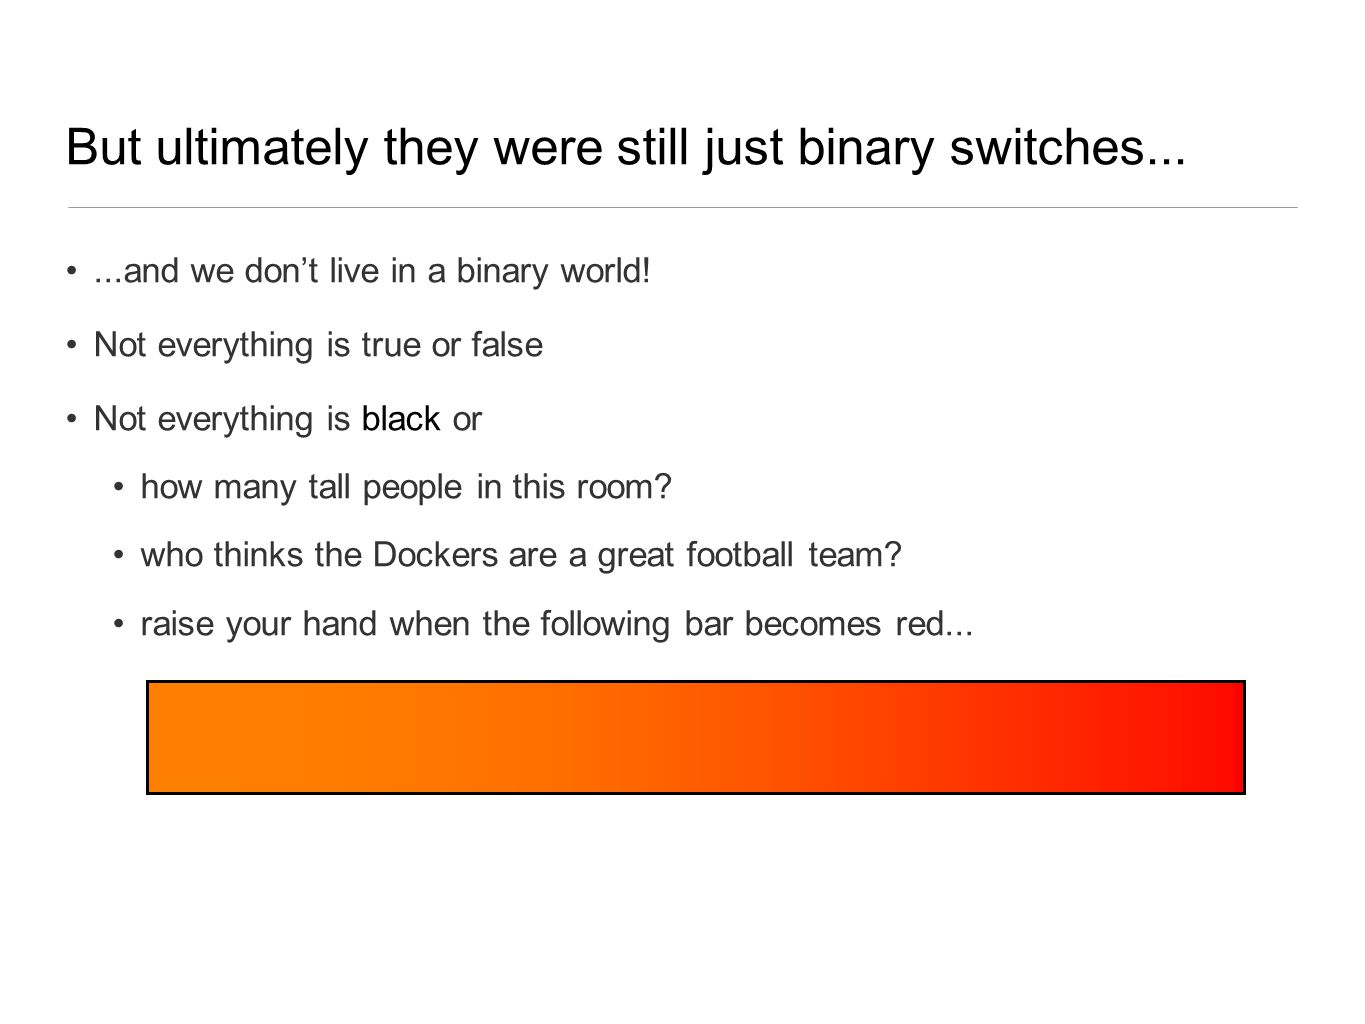 But ultimately they were still just binary switches......and we don't live in a binary world.